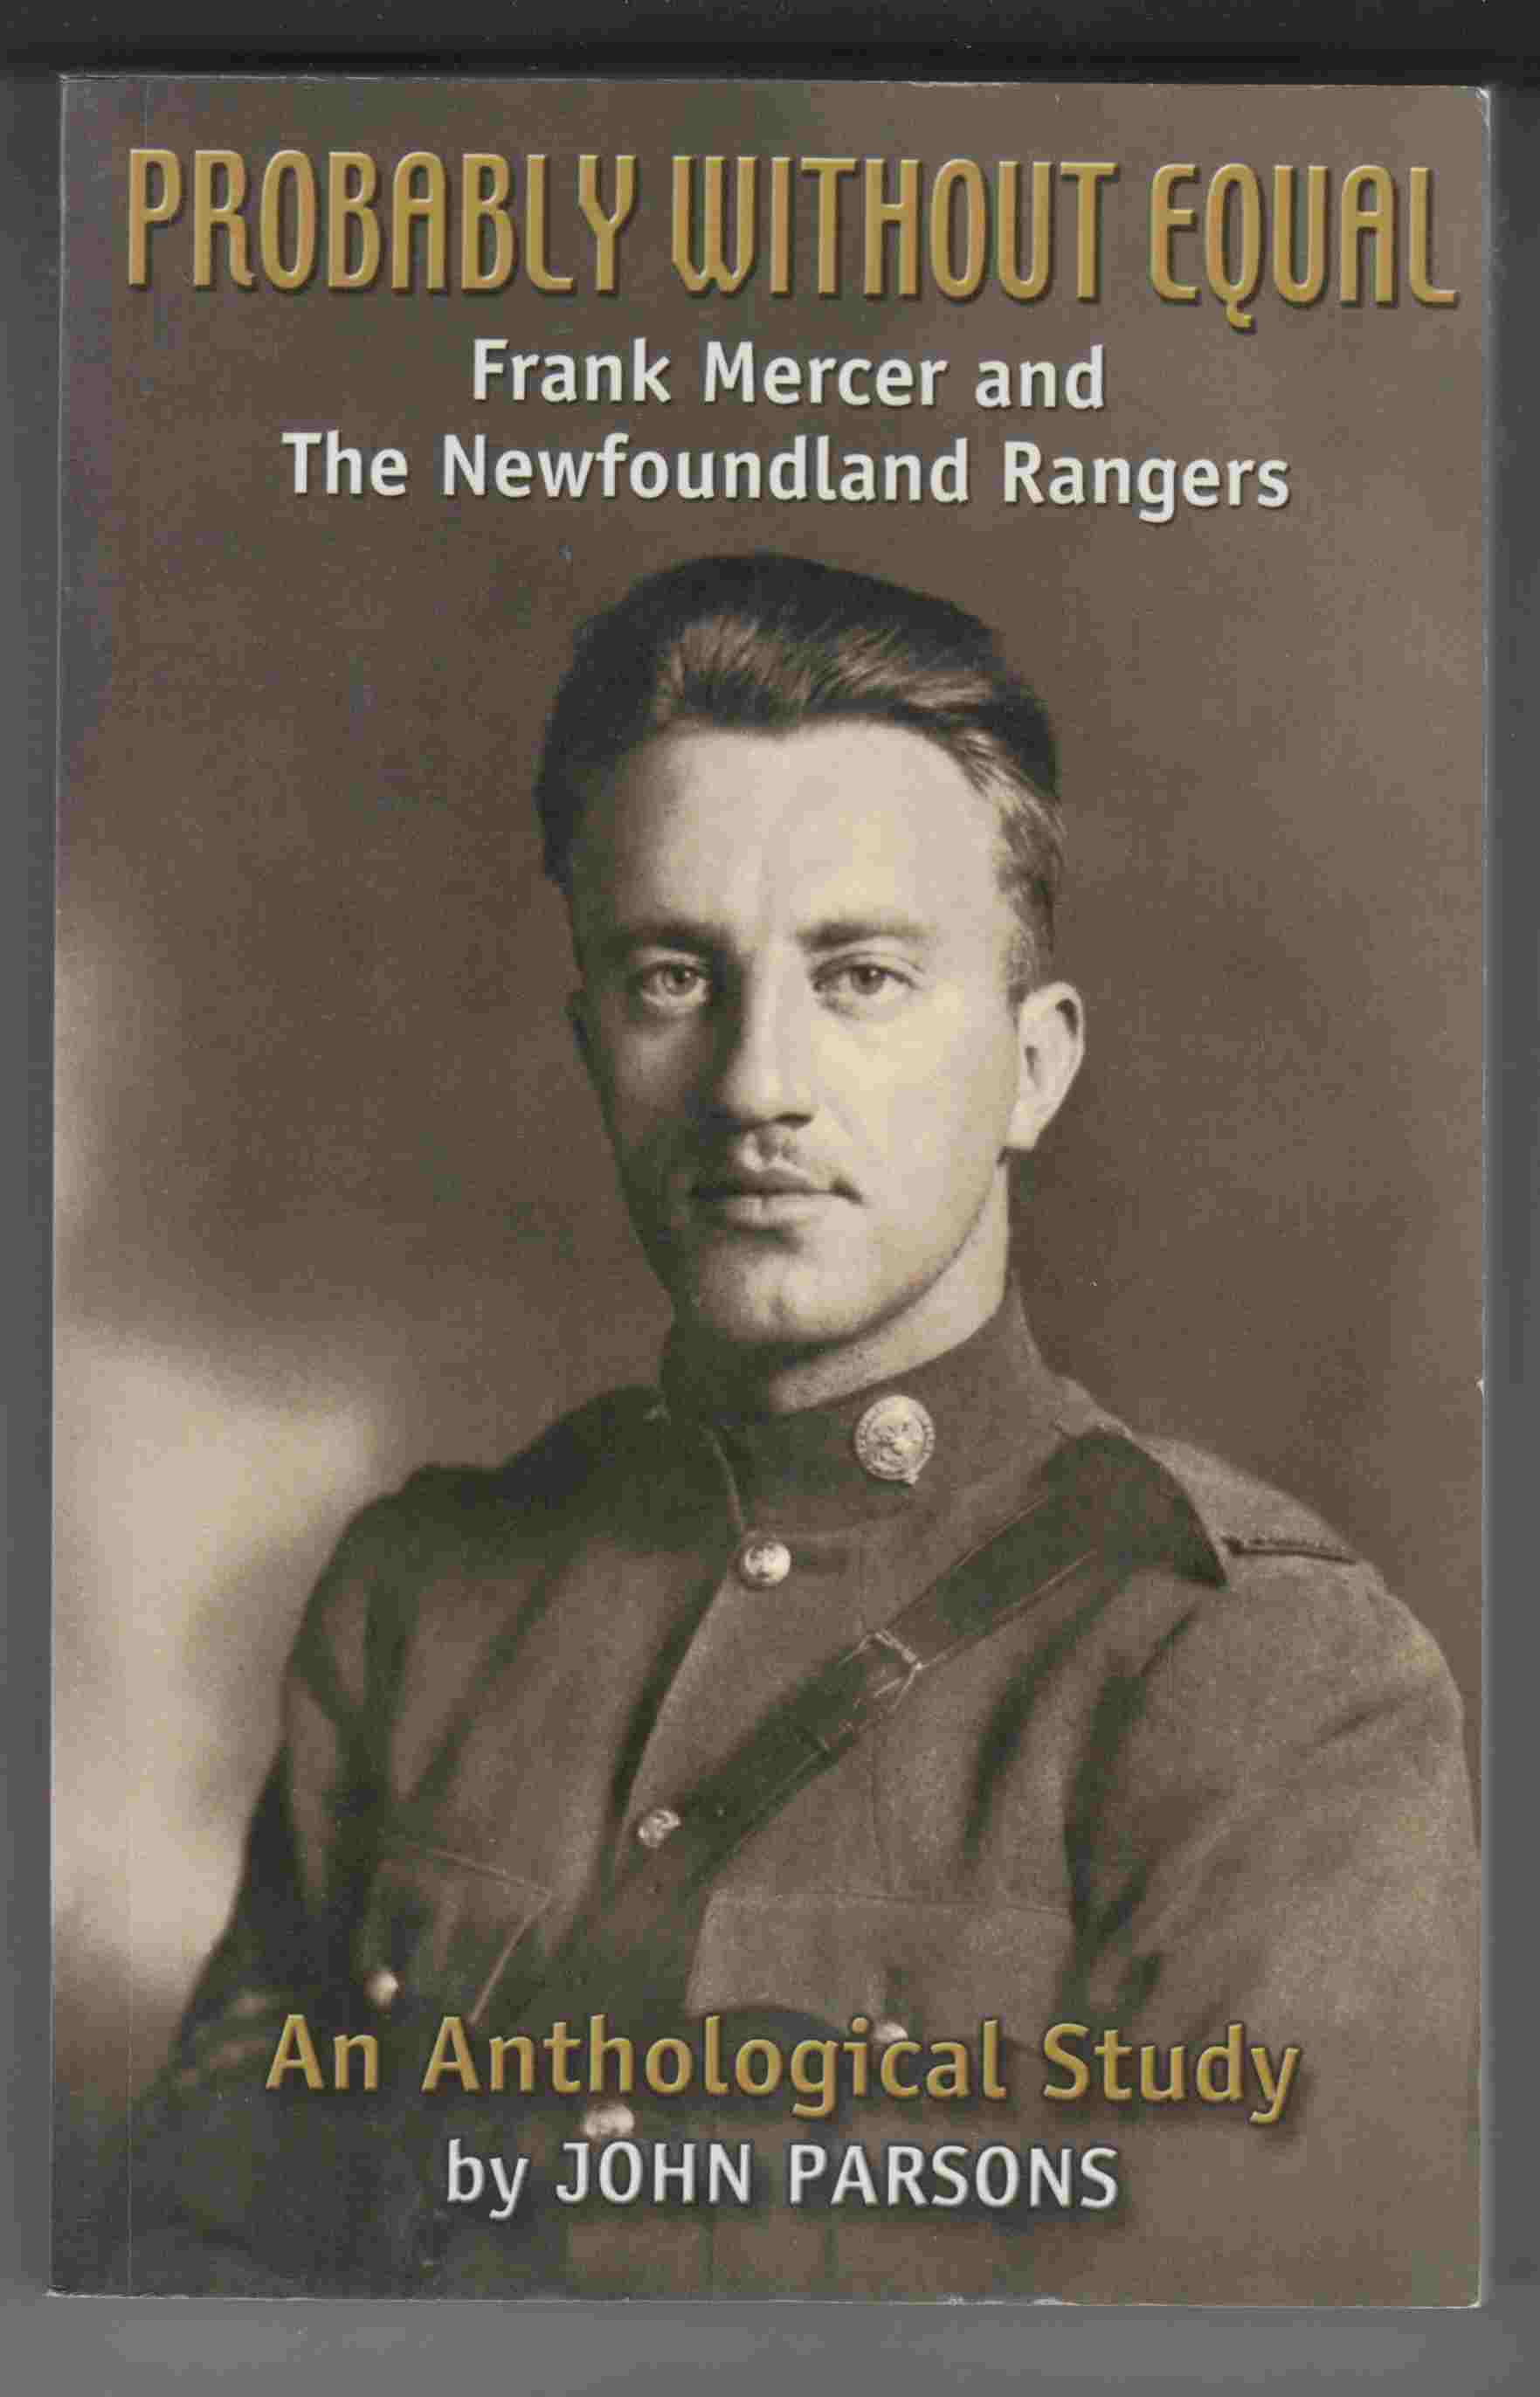 Image for Probably Without Equal Frank Mercer and the Newfoundland Rangers: an Anthological Study